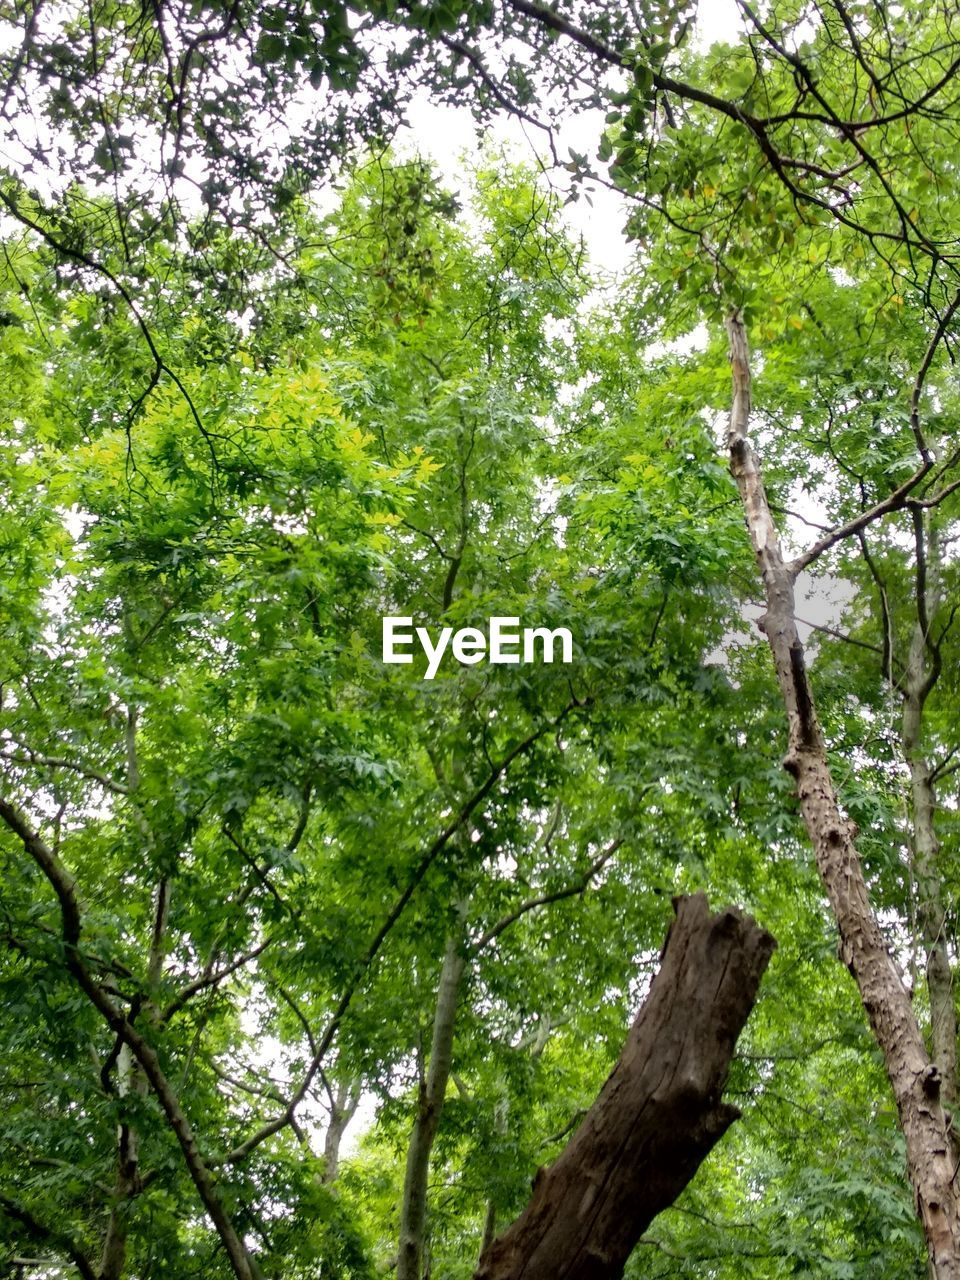 tree, plant, forest, tree trunk, trunk, nature, green color, branch, beauty in nature, land, growth, day, environment, plant part, tranquility, foliage, outdoors, leaf, low angle view, no people, woodland, leaves, tree canopy, directly below